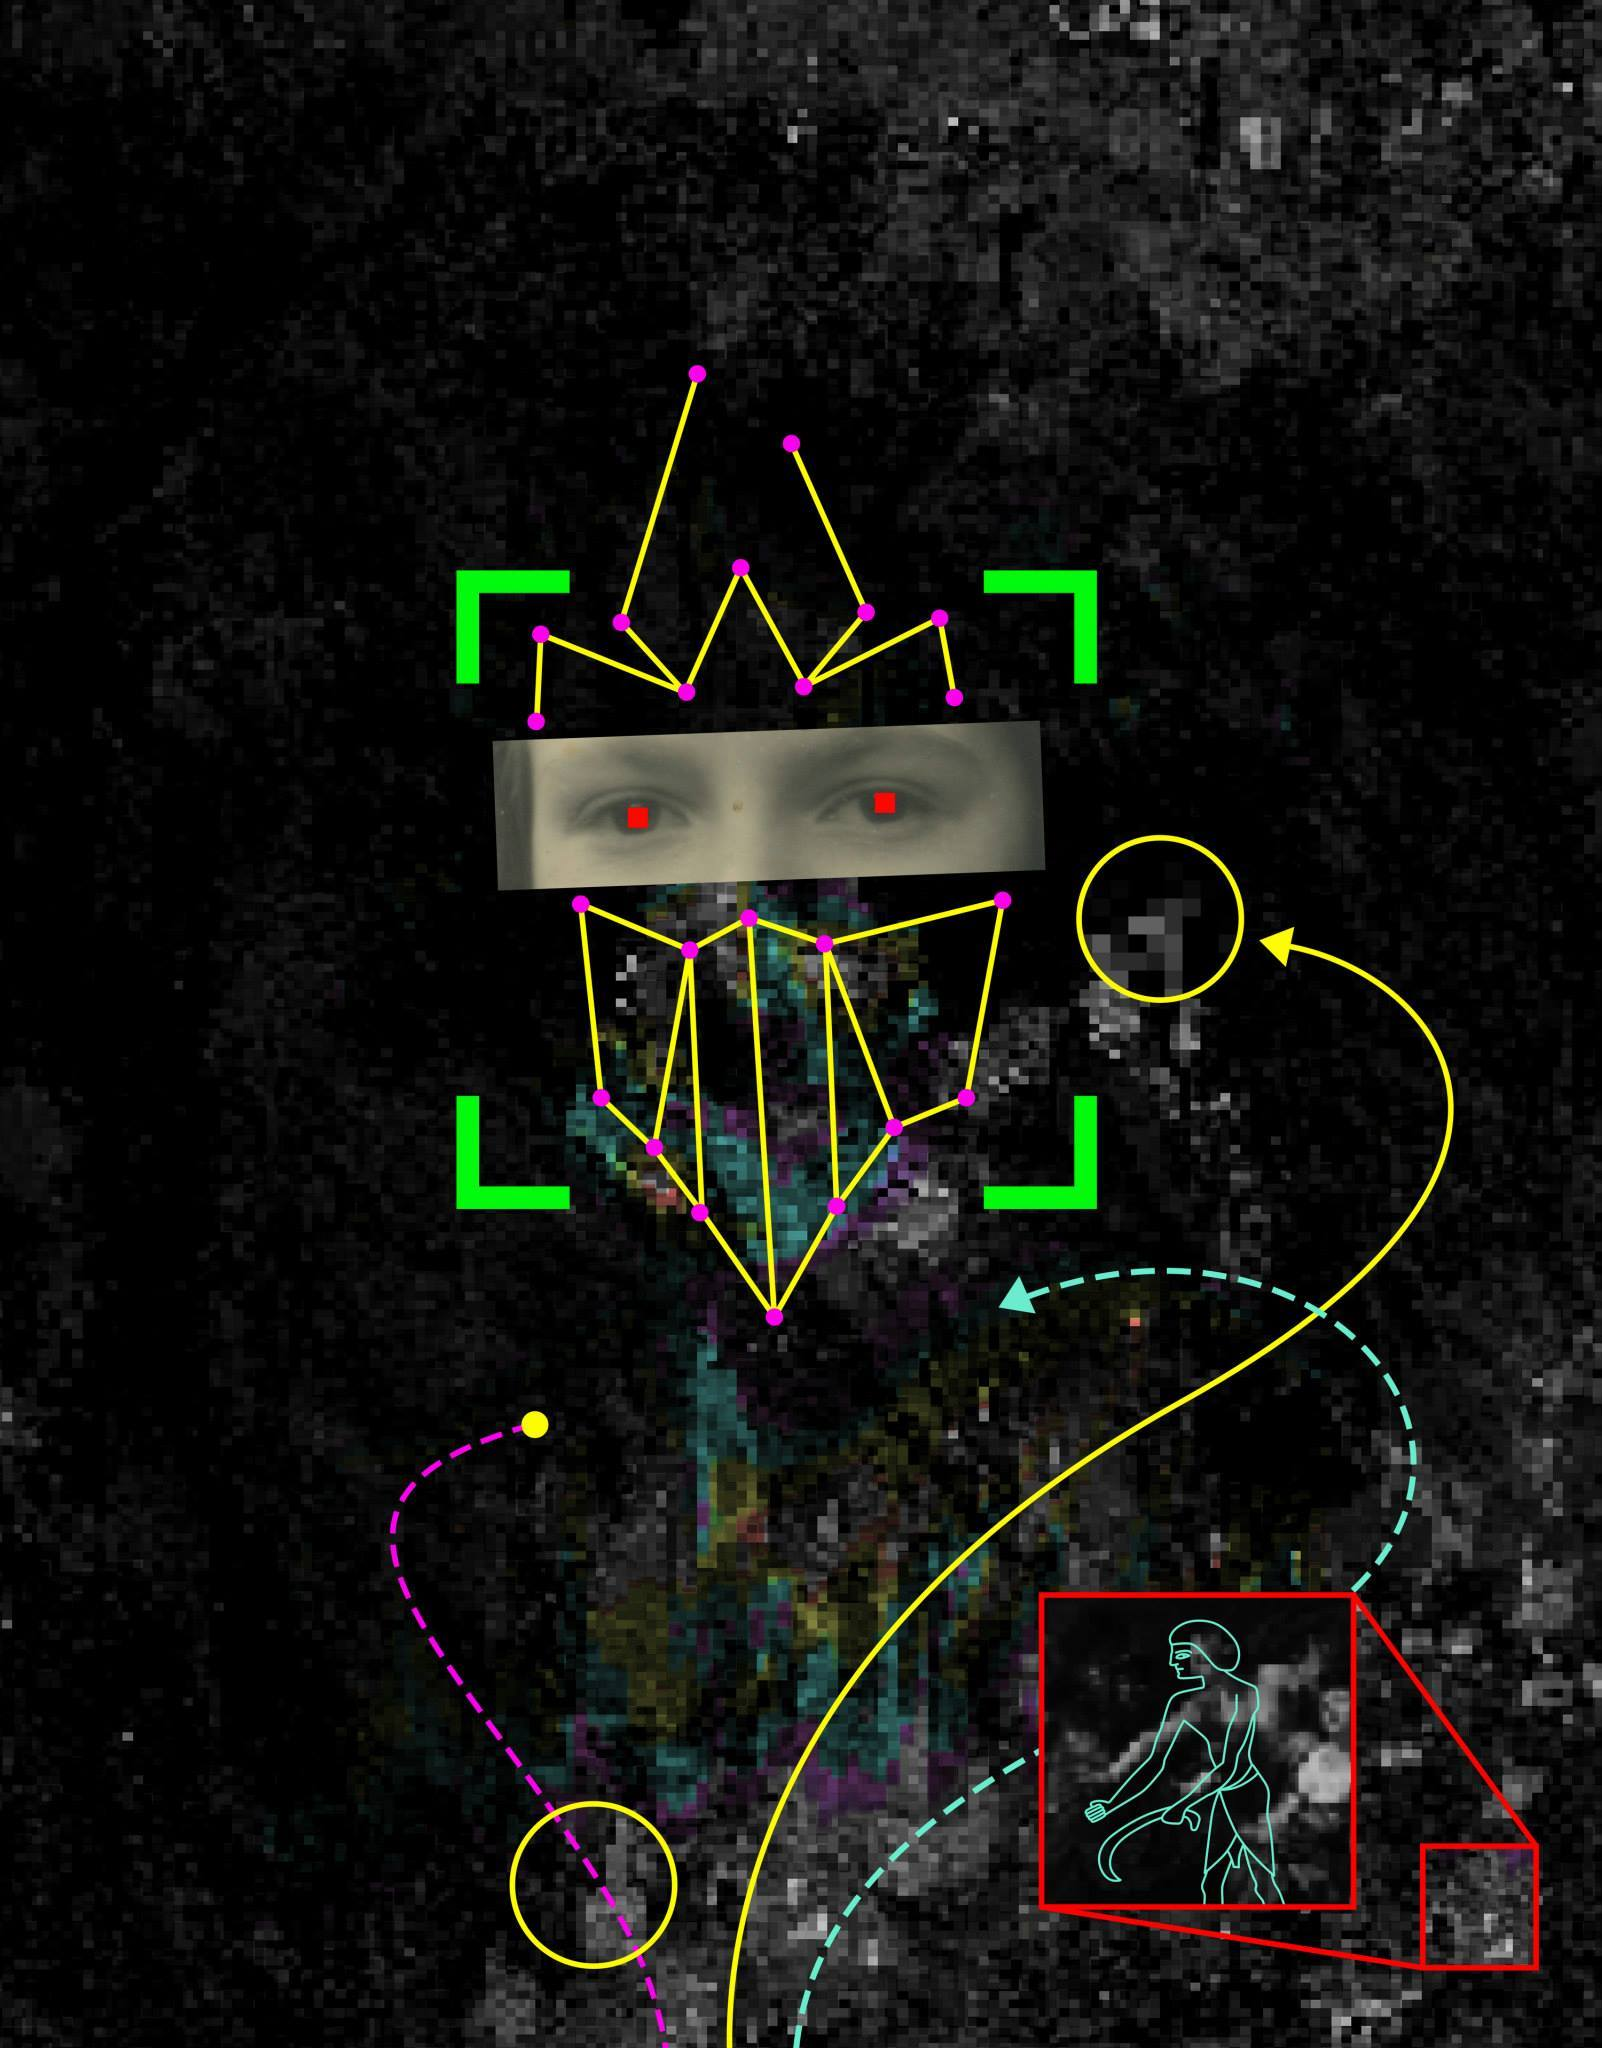 Jamie Stantonian   jamiestantonian.com   I am preoccupied with humanity's co-evolution with technology, particularly how the information age is obscuring our collective ability to comprehend the world clearly at the same time as we have initiated epochal ecological and technological changes. But both we and the planet are durable. That rather than being doomed, we are living through the final act of our origin story.